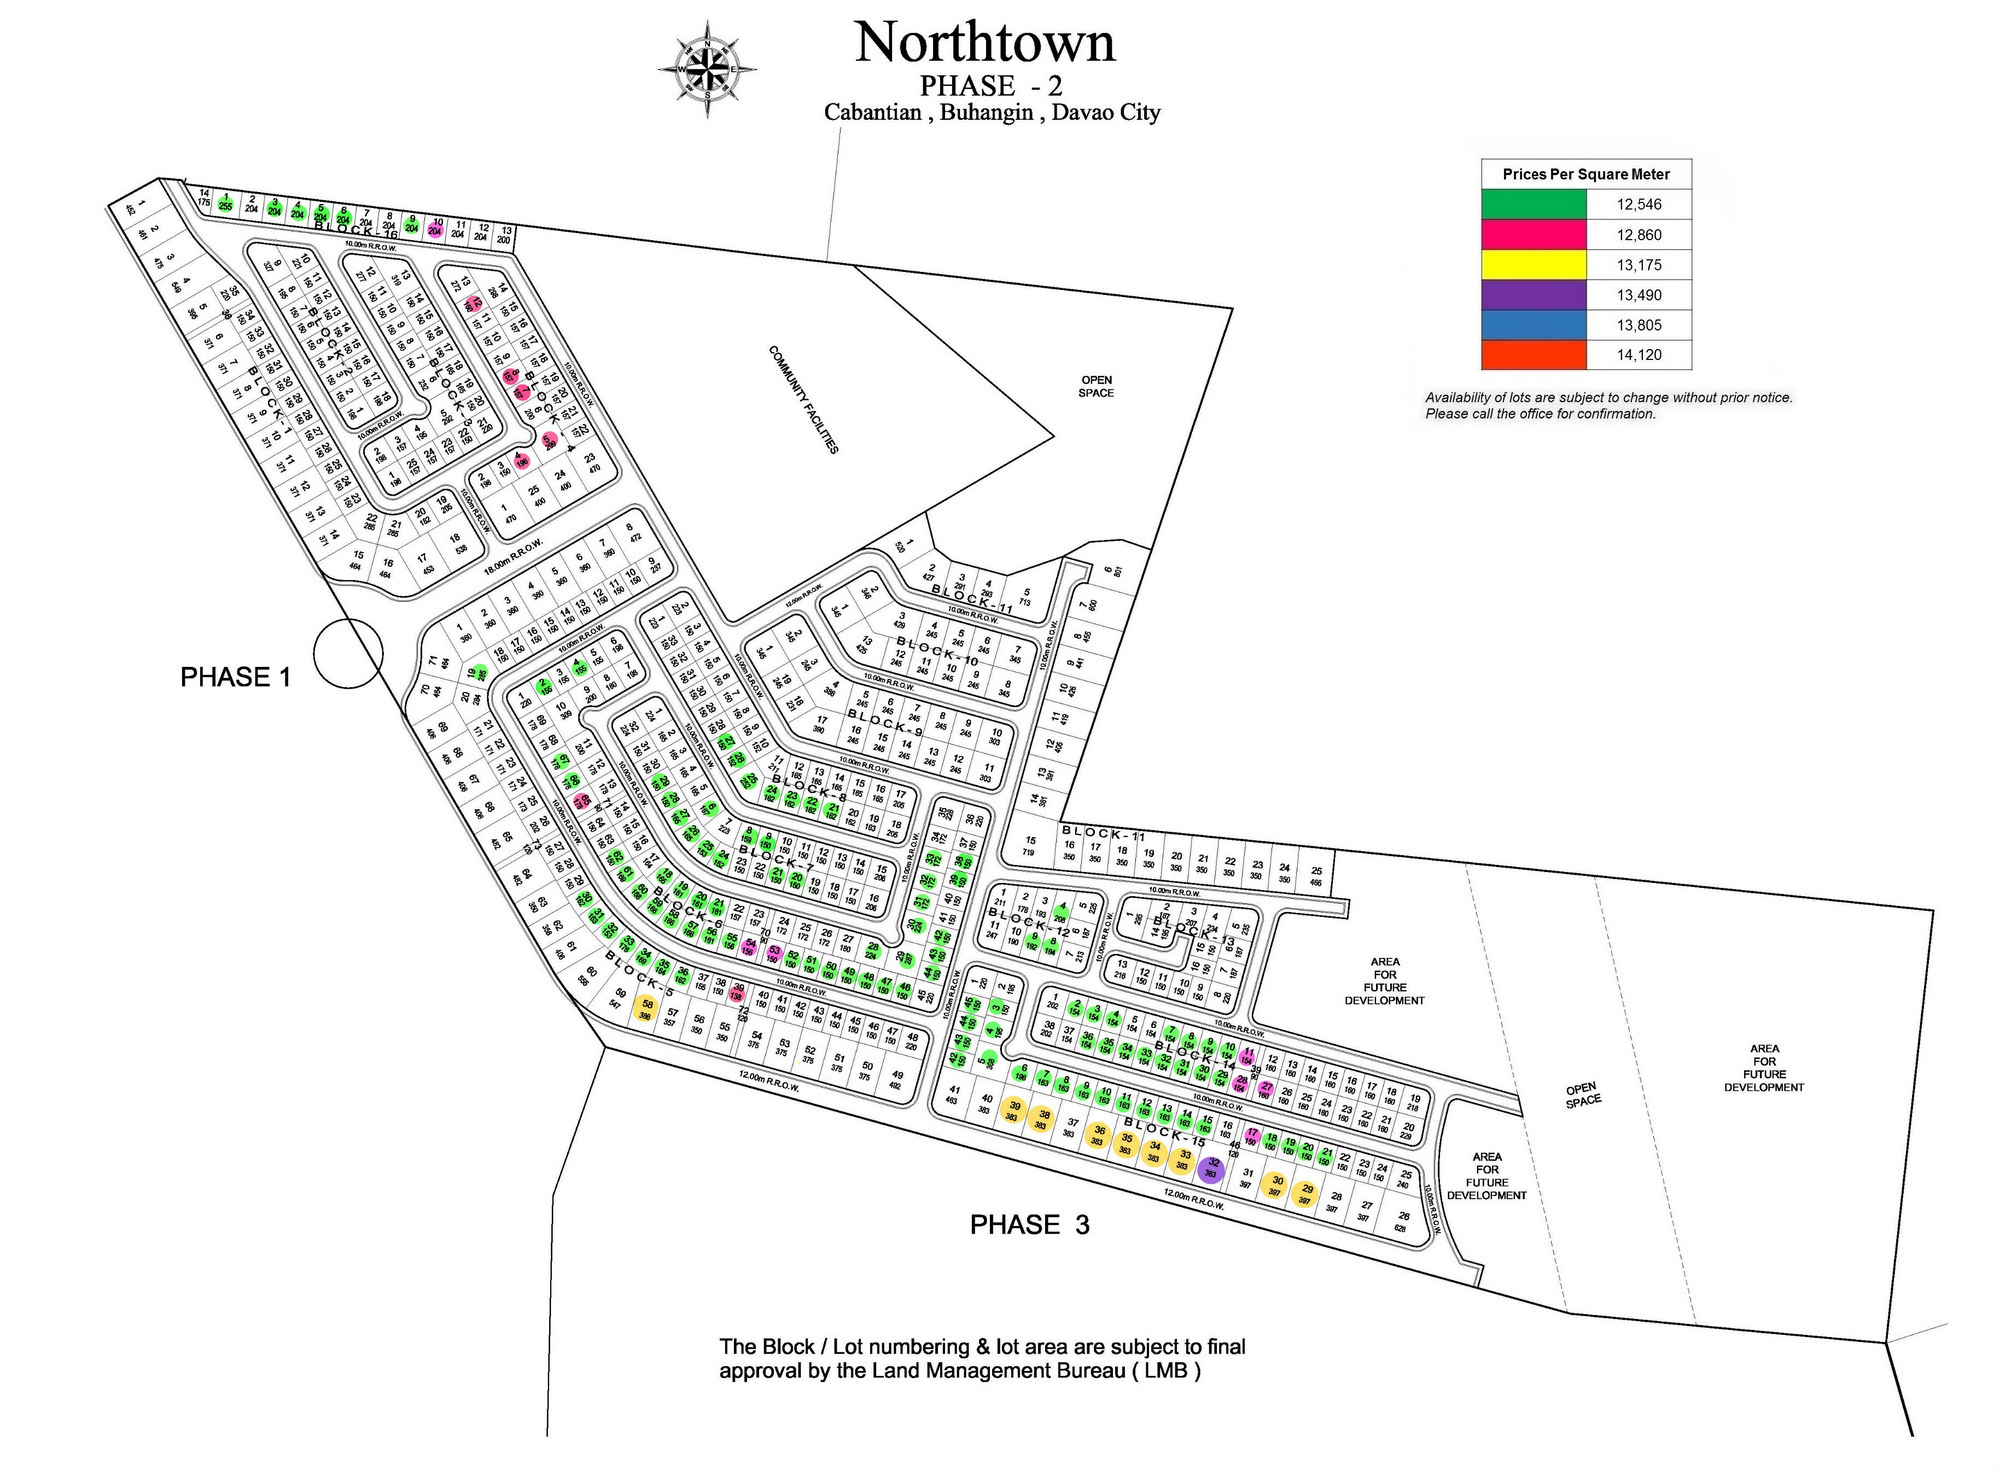 Northtown site development map of Phase 2